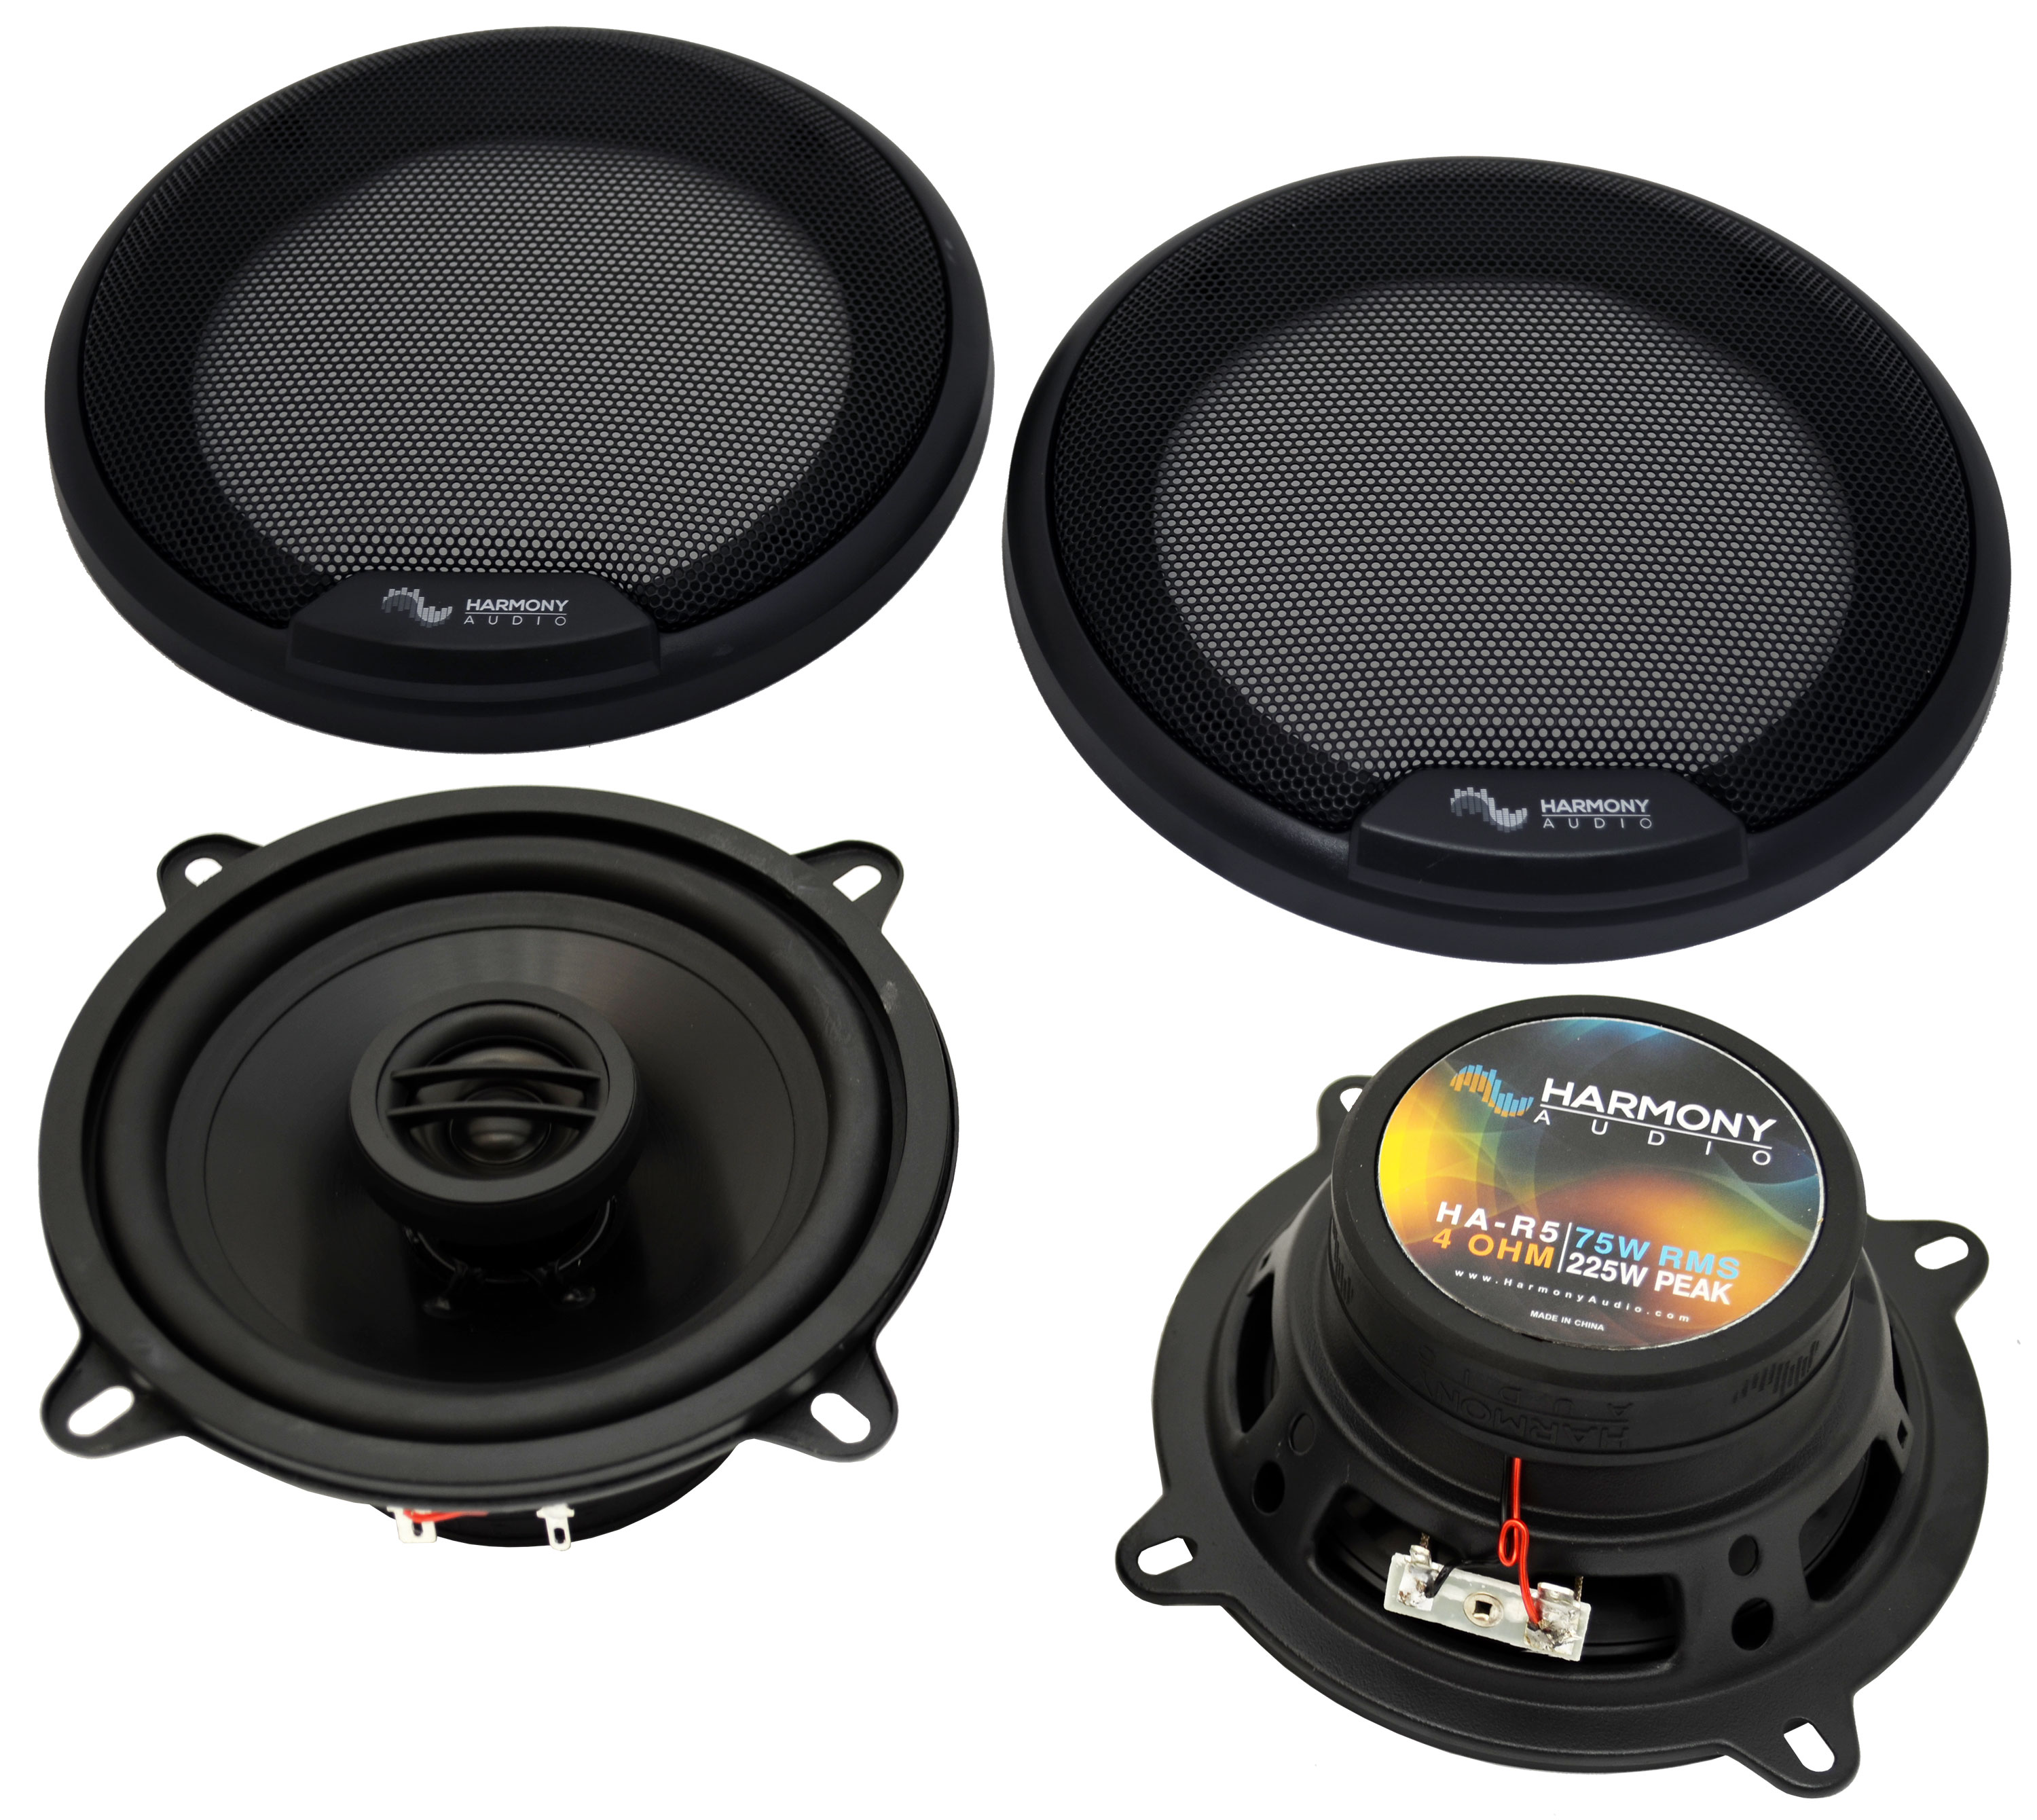 Fits BMW M3 1988-1991 Rear Deck Replacement Speaker Harmony HA-R5 Speakers New